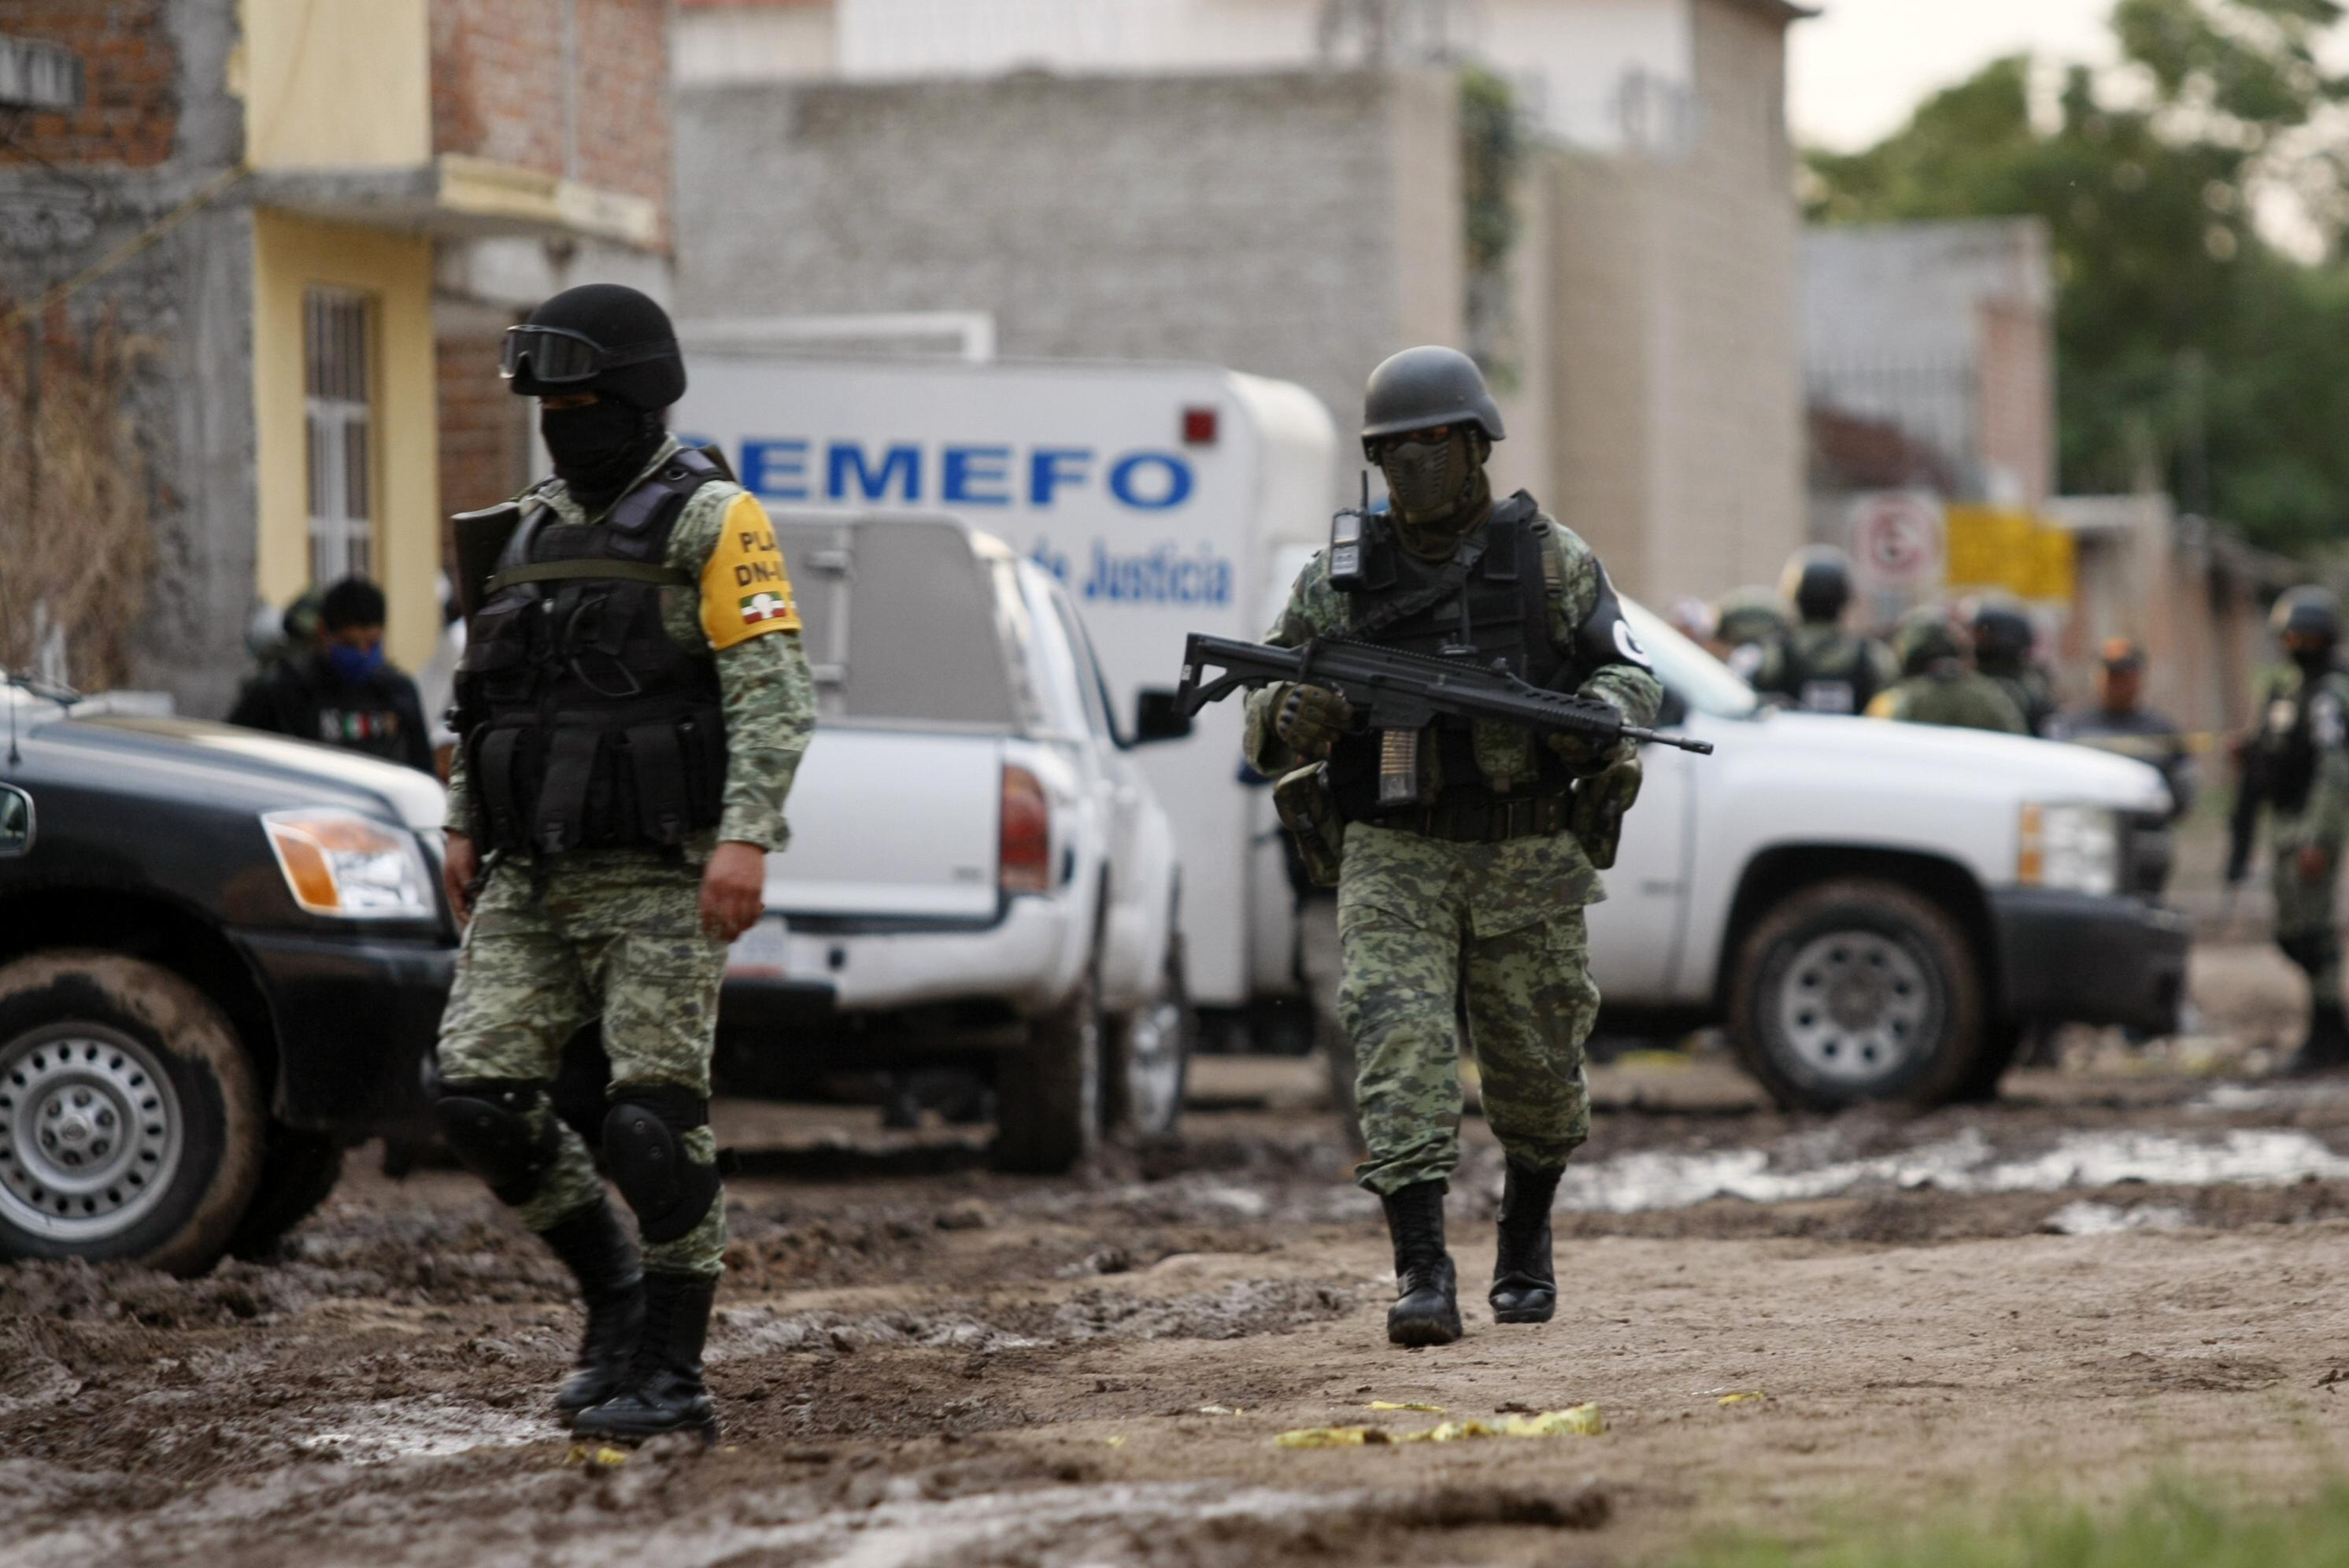 Members of the National Guard walk near the crime scene where 24 people were killed in Irapuato, Guanajuato state, Mexico, on July 1, 2020. - An armed attack at a drug rehabilitation center in Irapuato, a town in the central Mexican state of Guanajuato, left at least 24 dead and seven wounded on Wednesday, local authorities reported. (Photo by MARIO ARMAS / AFP) (Photo by MARIO ARMAS/AFP via Getty Images)